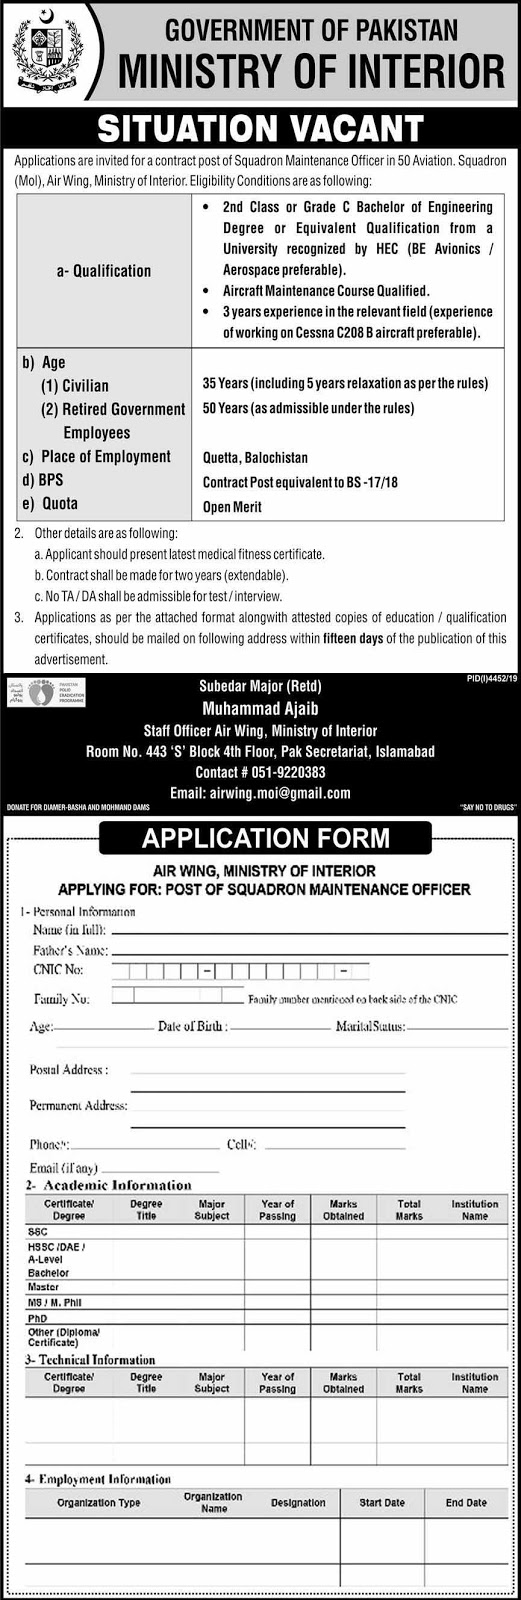 Ministry Of Interior Govt Of Pakistan Jobs For Maintenance Officer, Squadron Pilot and Others February 2020